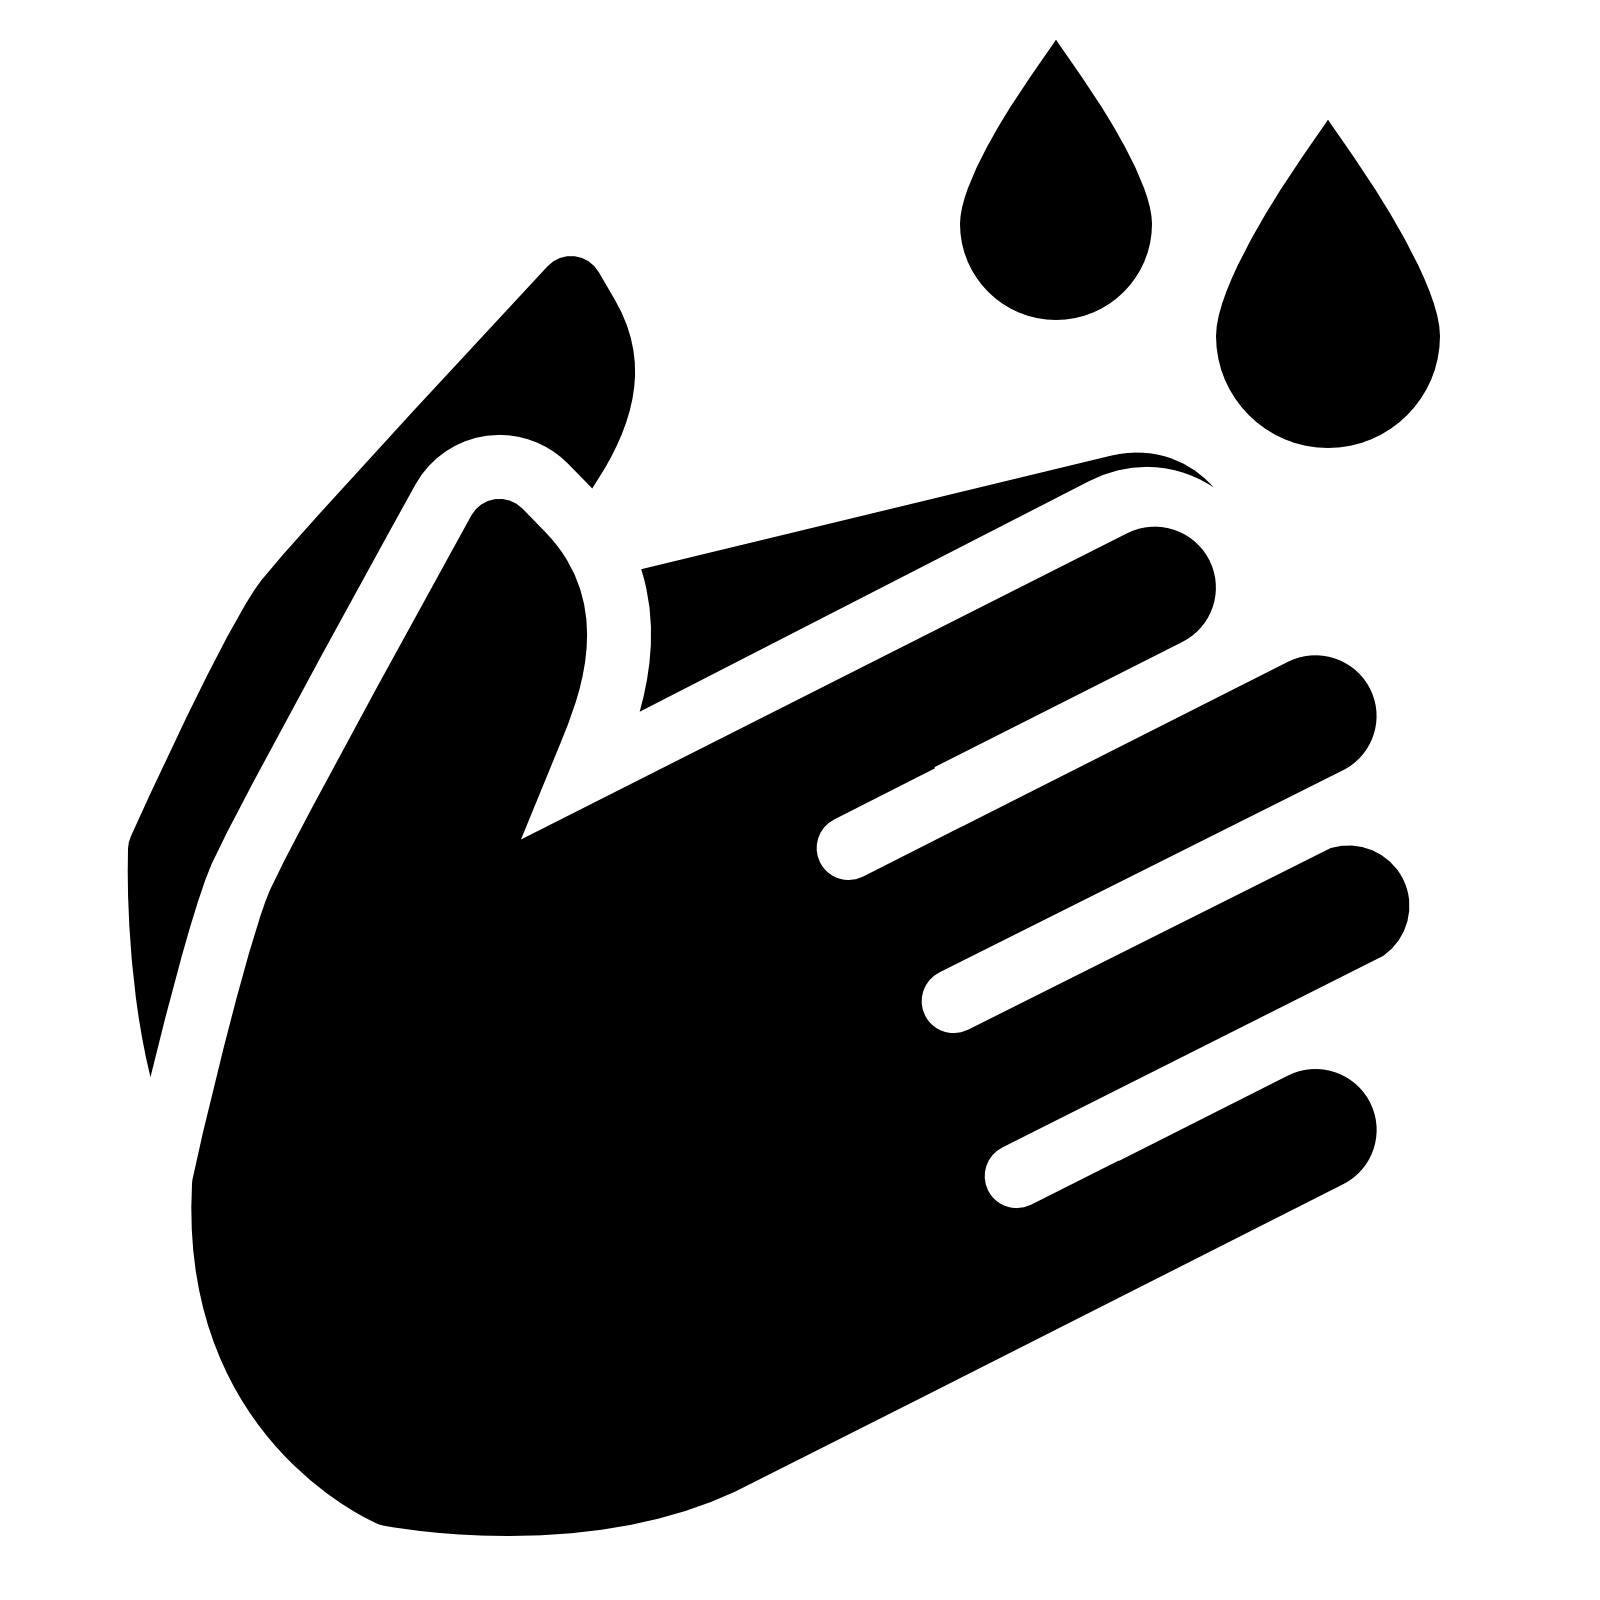 Wash Your Hands Filled icon - PNG Hand Washing